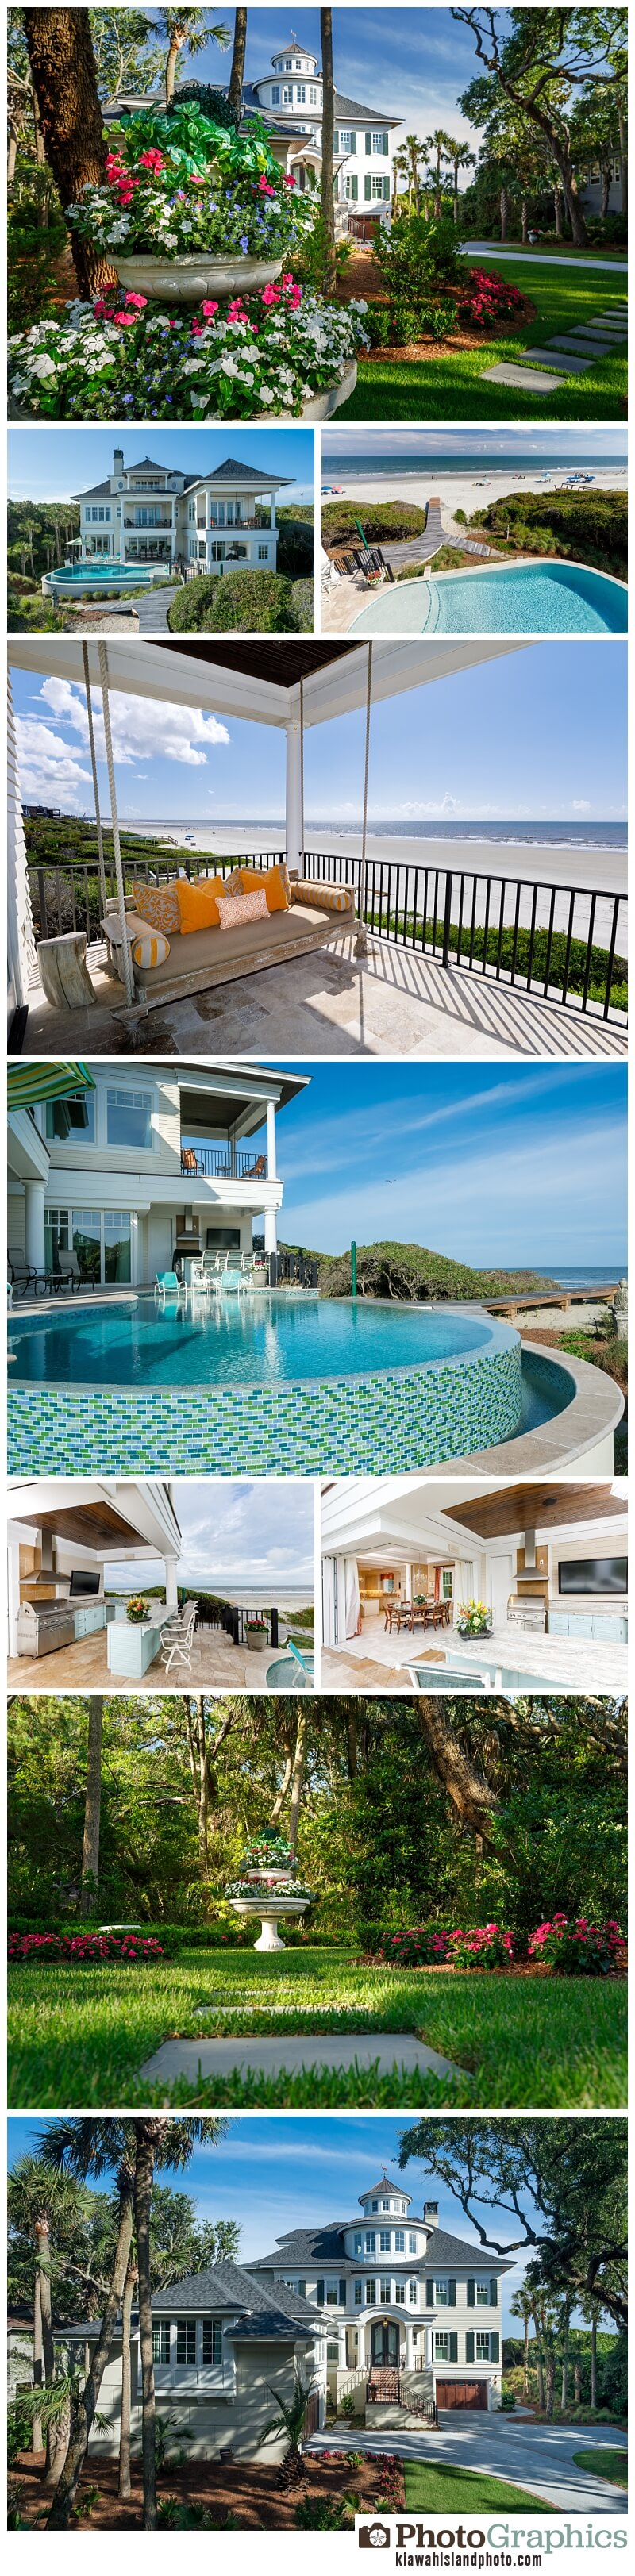 real estate photography on kiawah island exterior photos front and back of house ocean front views